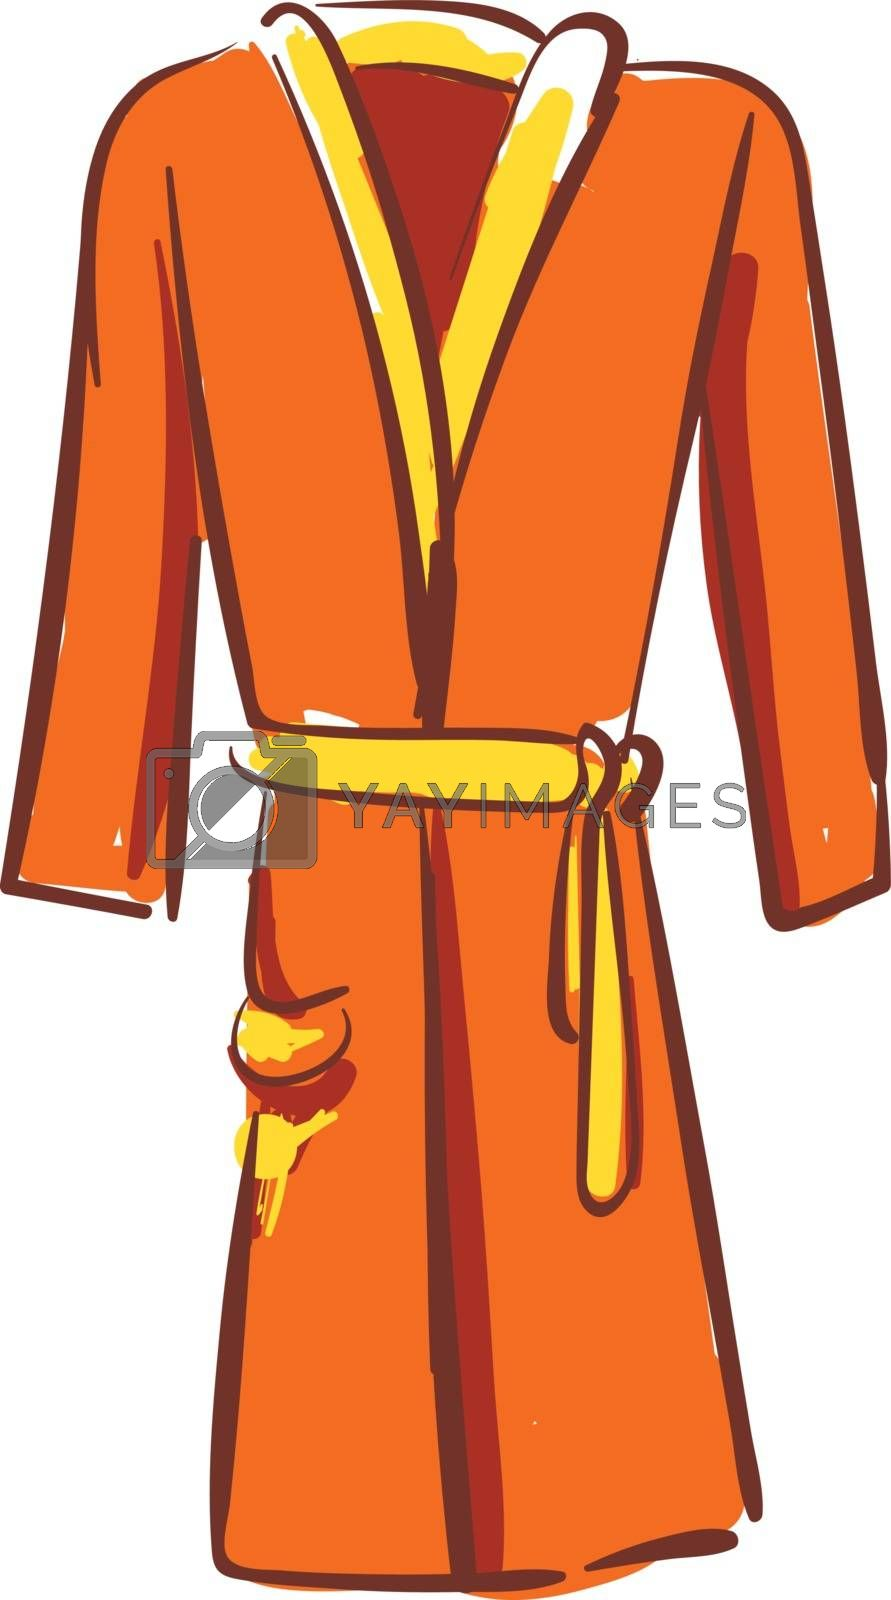 Royalty free image of A showcase orange-colored bathrobe over white background vector  by Morphart